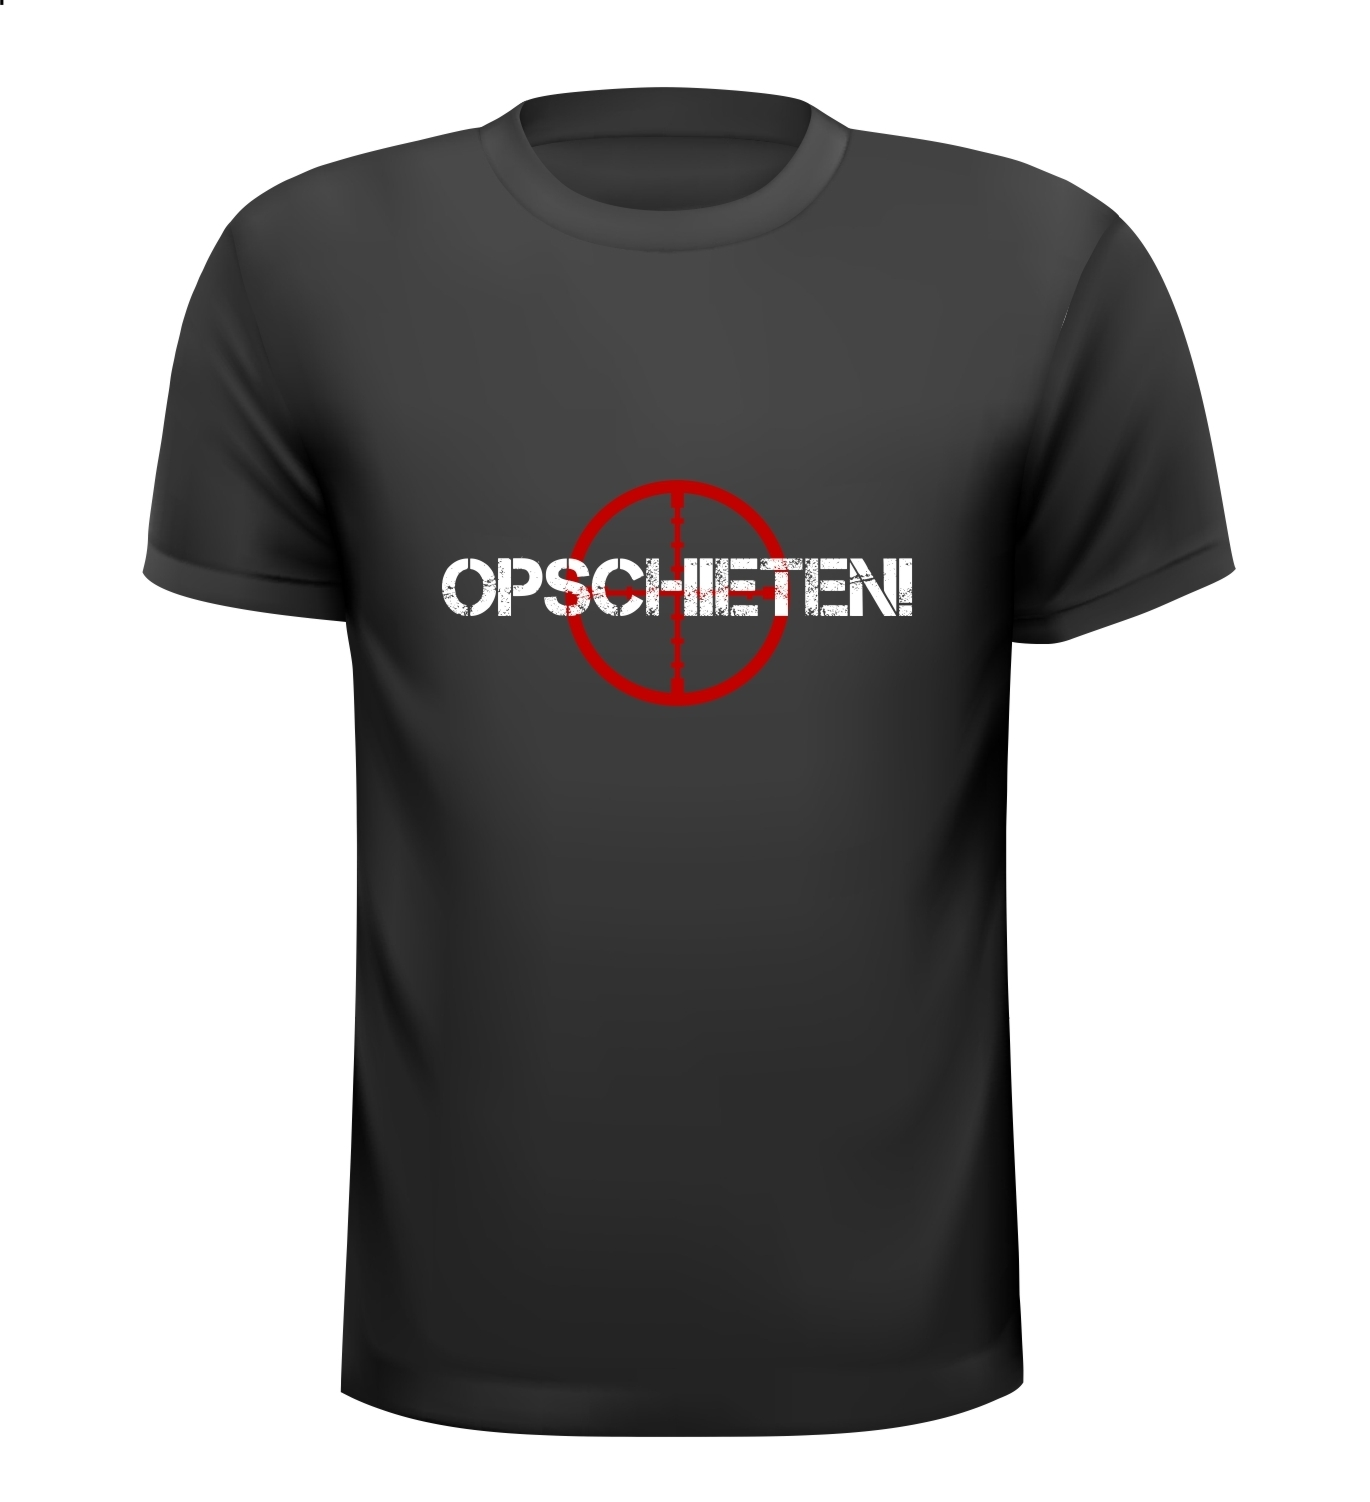 Opschieten T-shirt